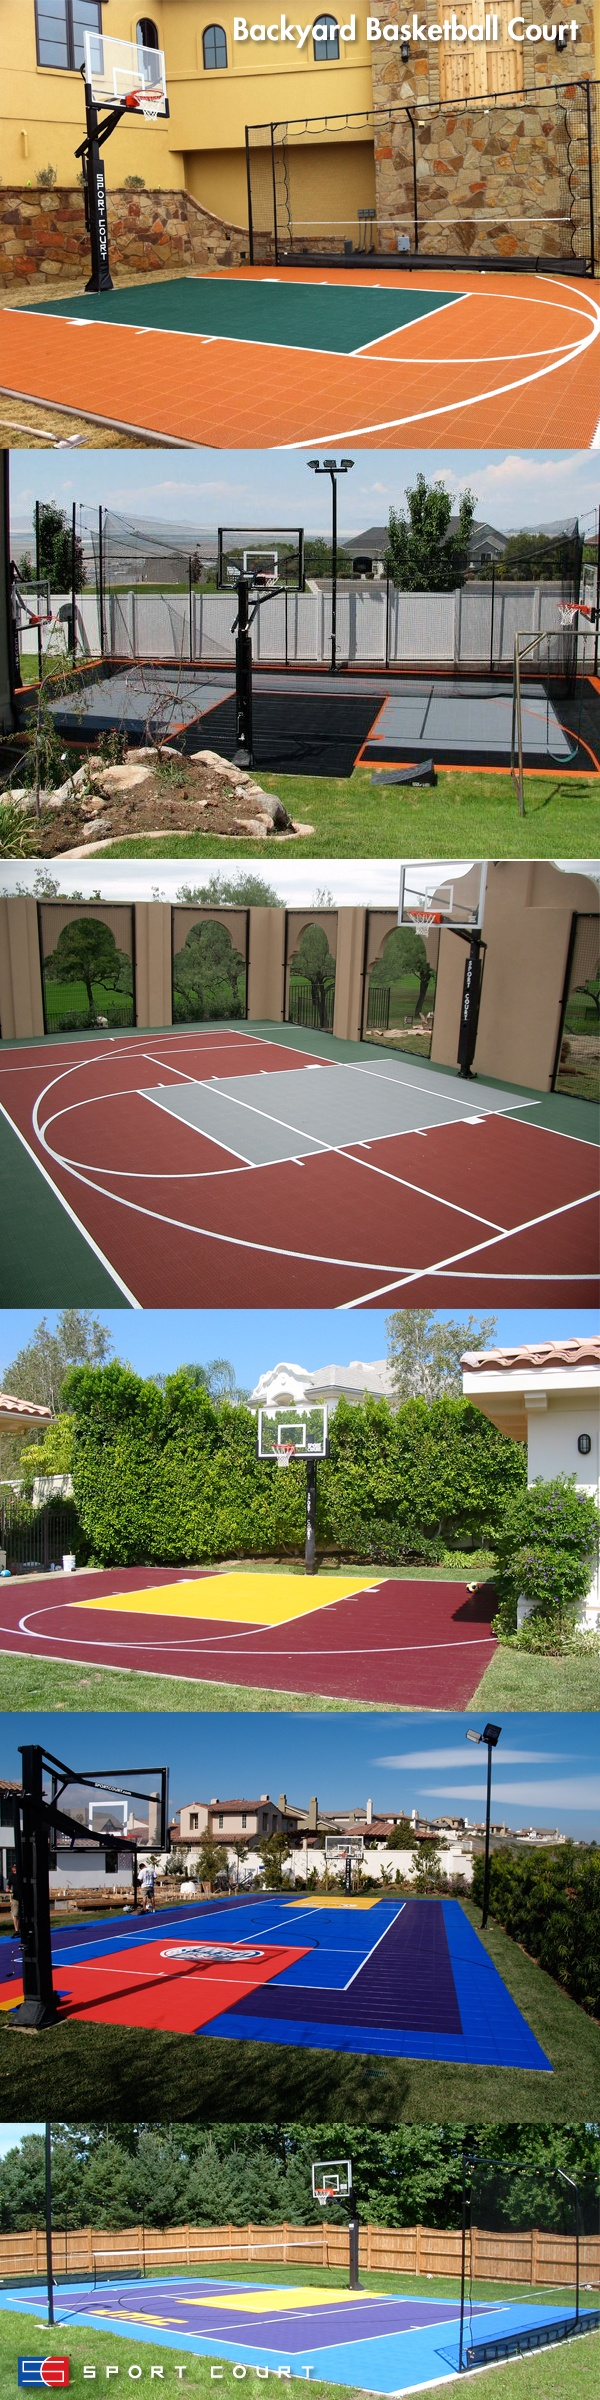 8 best sport court images on pinterest backyard basketball court